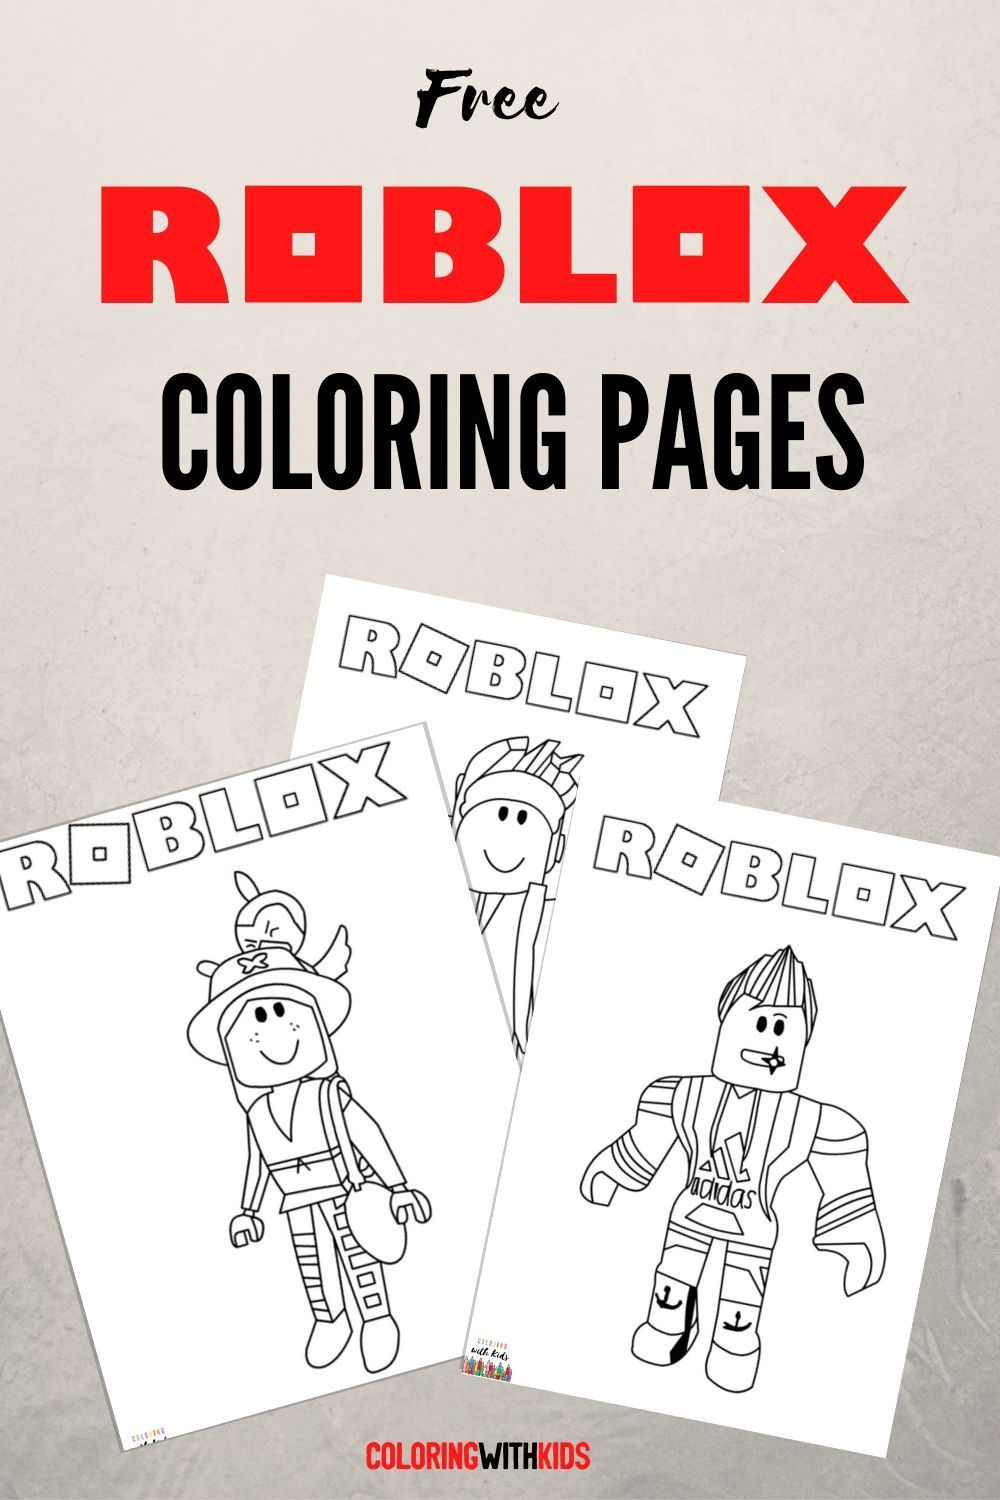 Free Roblox Coloring Pages In 2020 Coloring Pages Roblox Free Birthday Stuff